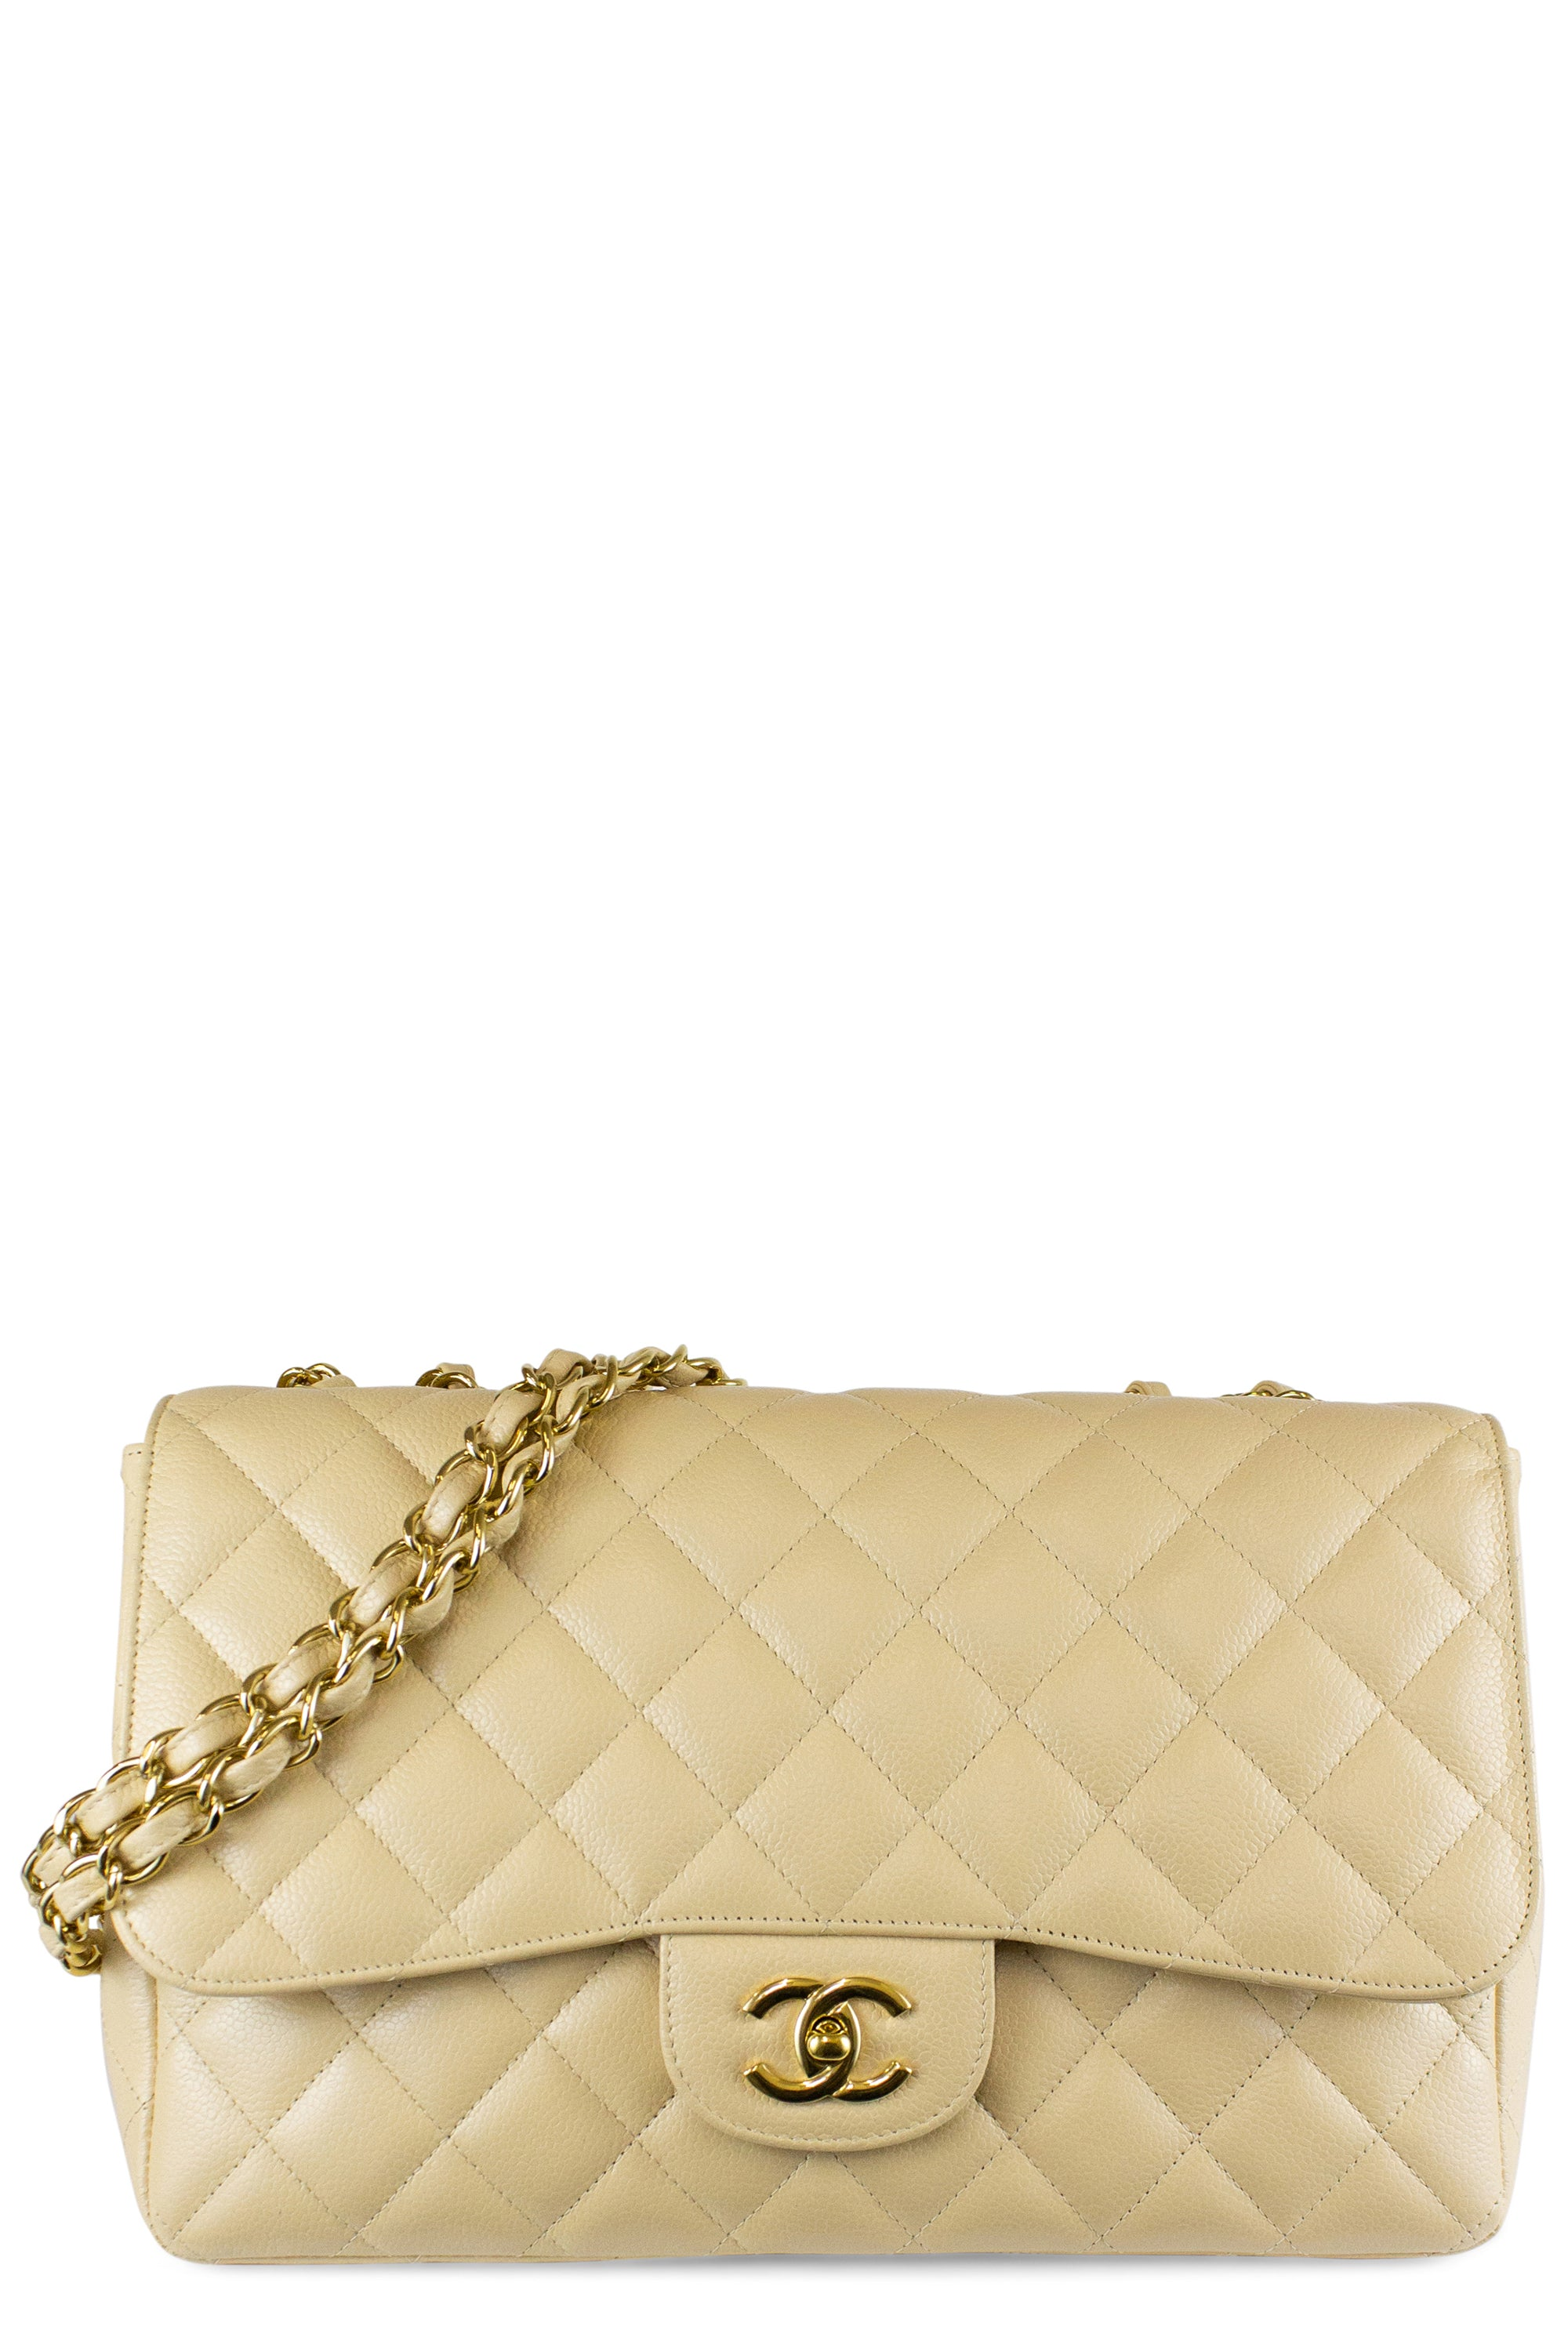 Chanel Jumbo Caviar Leather One Flap Bag